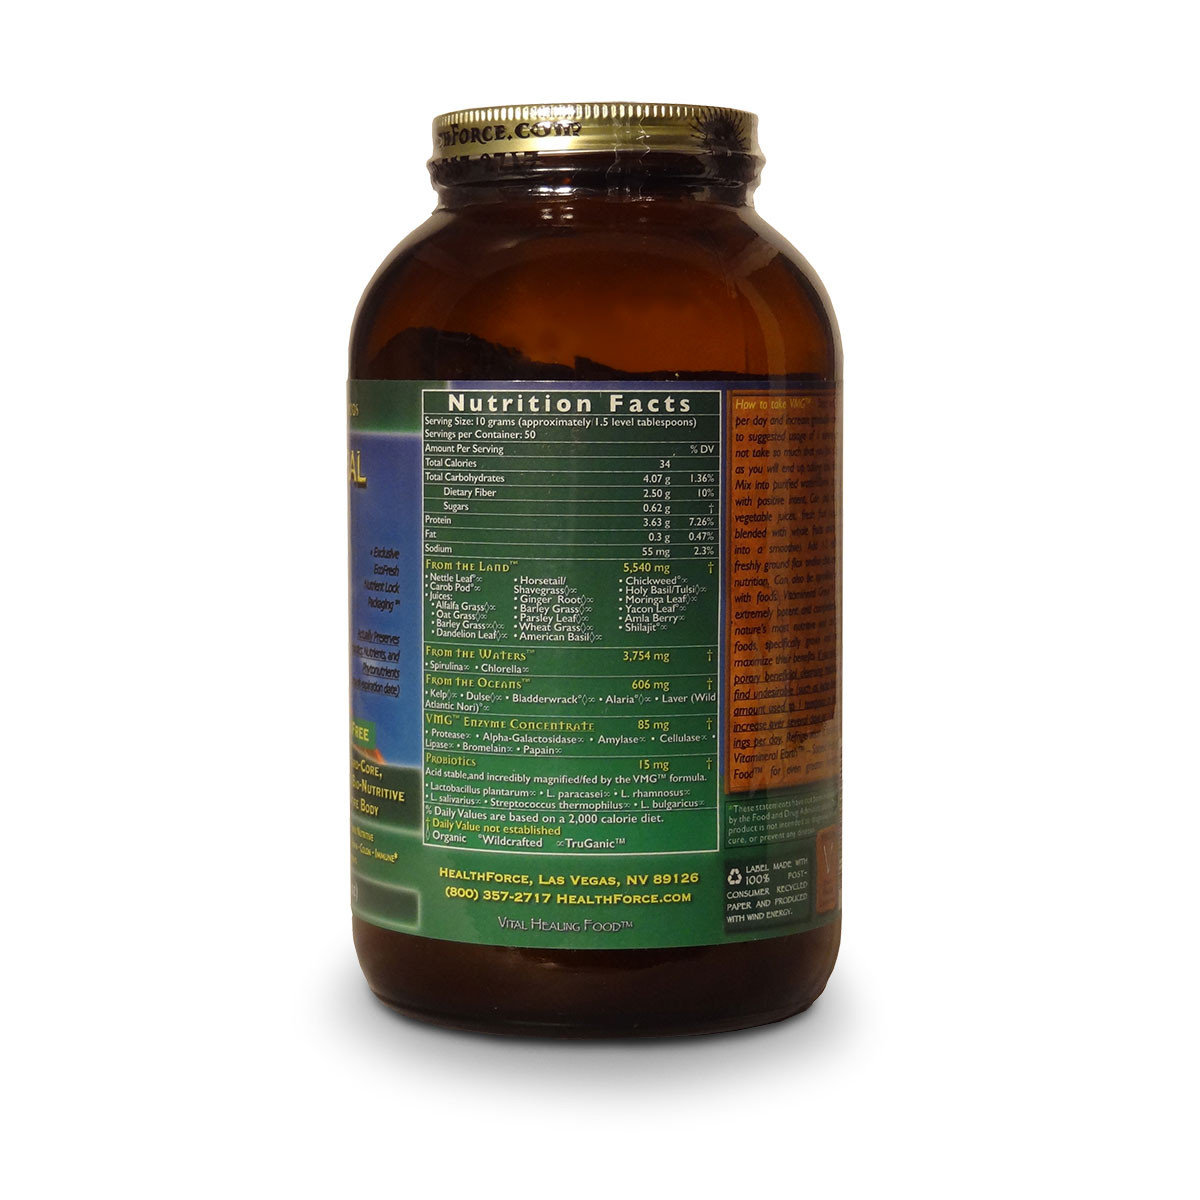 Label view with nutritional facts, ingredients, and serving size for Healthforce Nutritionals Vitamineral Green.